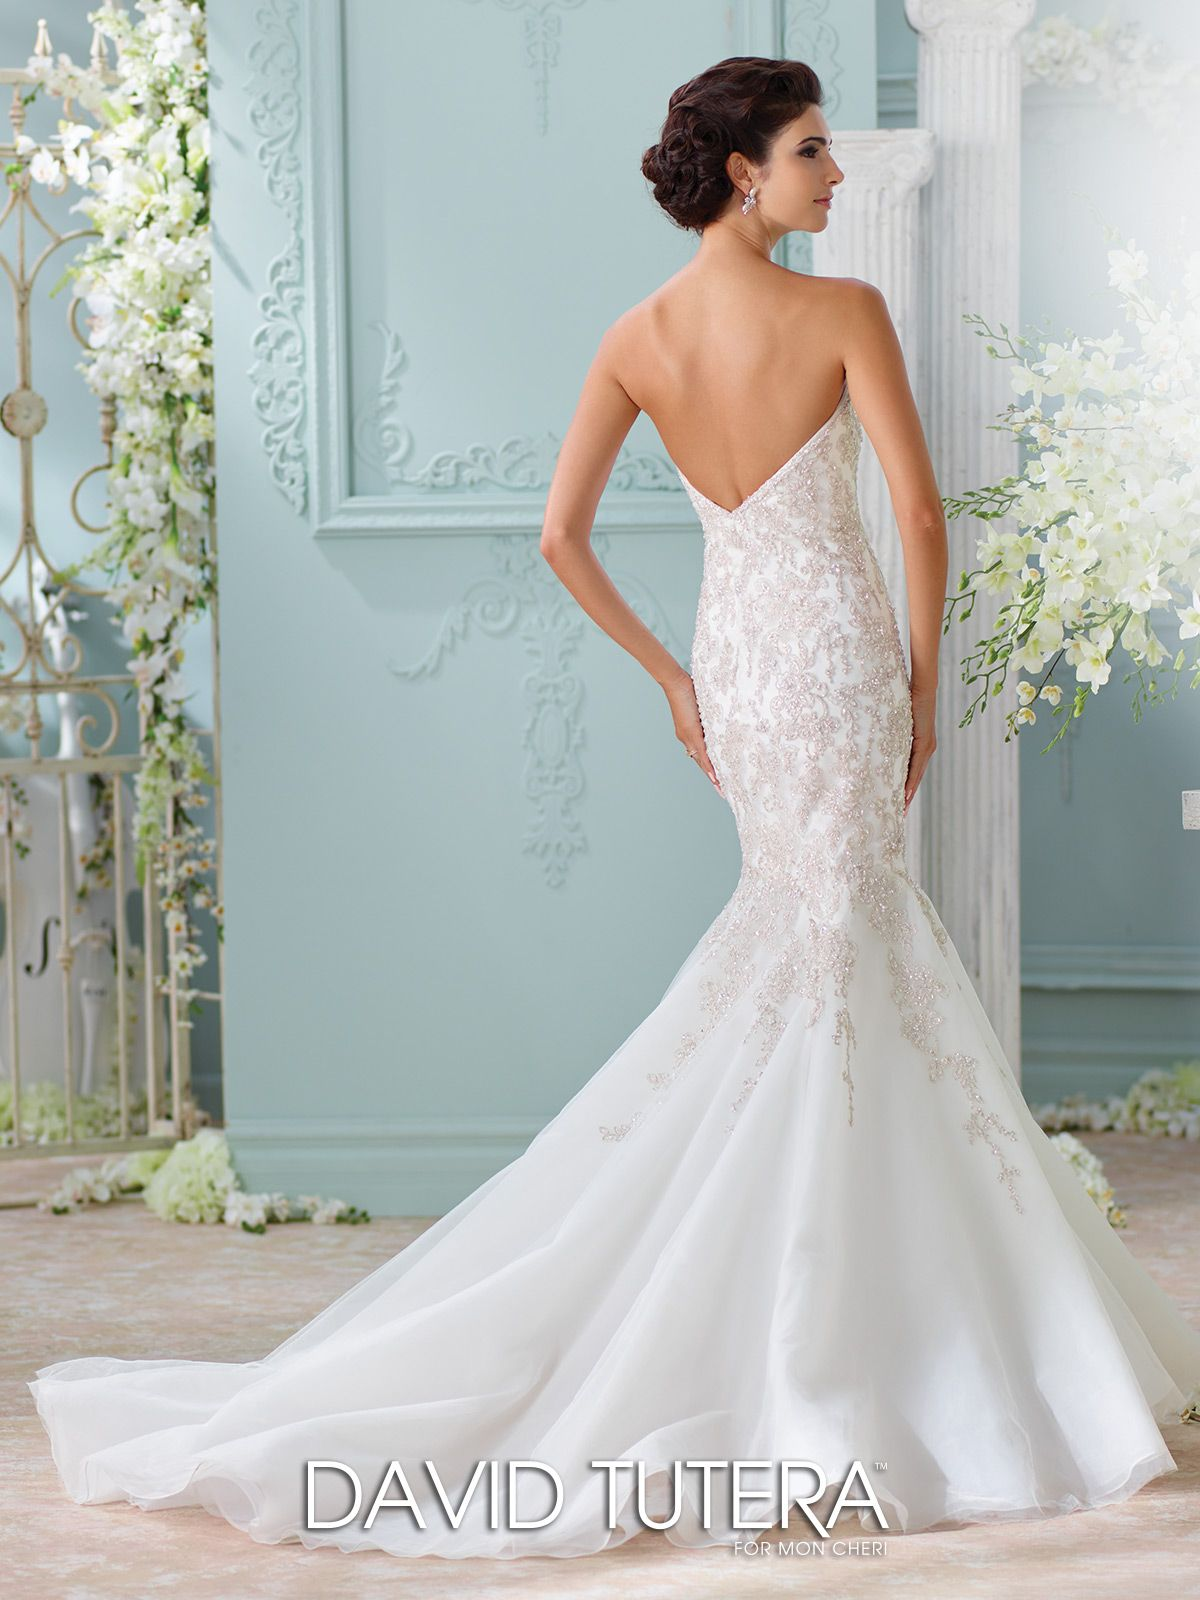 Unique Wedding Dresses Fall 2018 - Martin Thornburg | David tutera ...